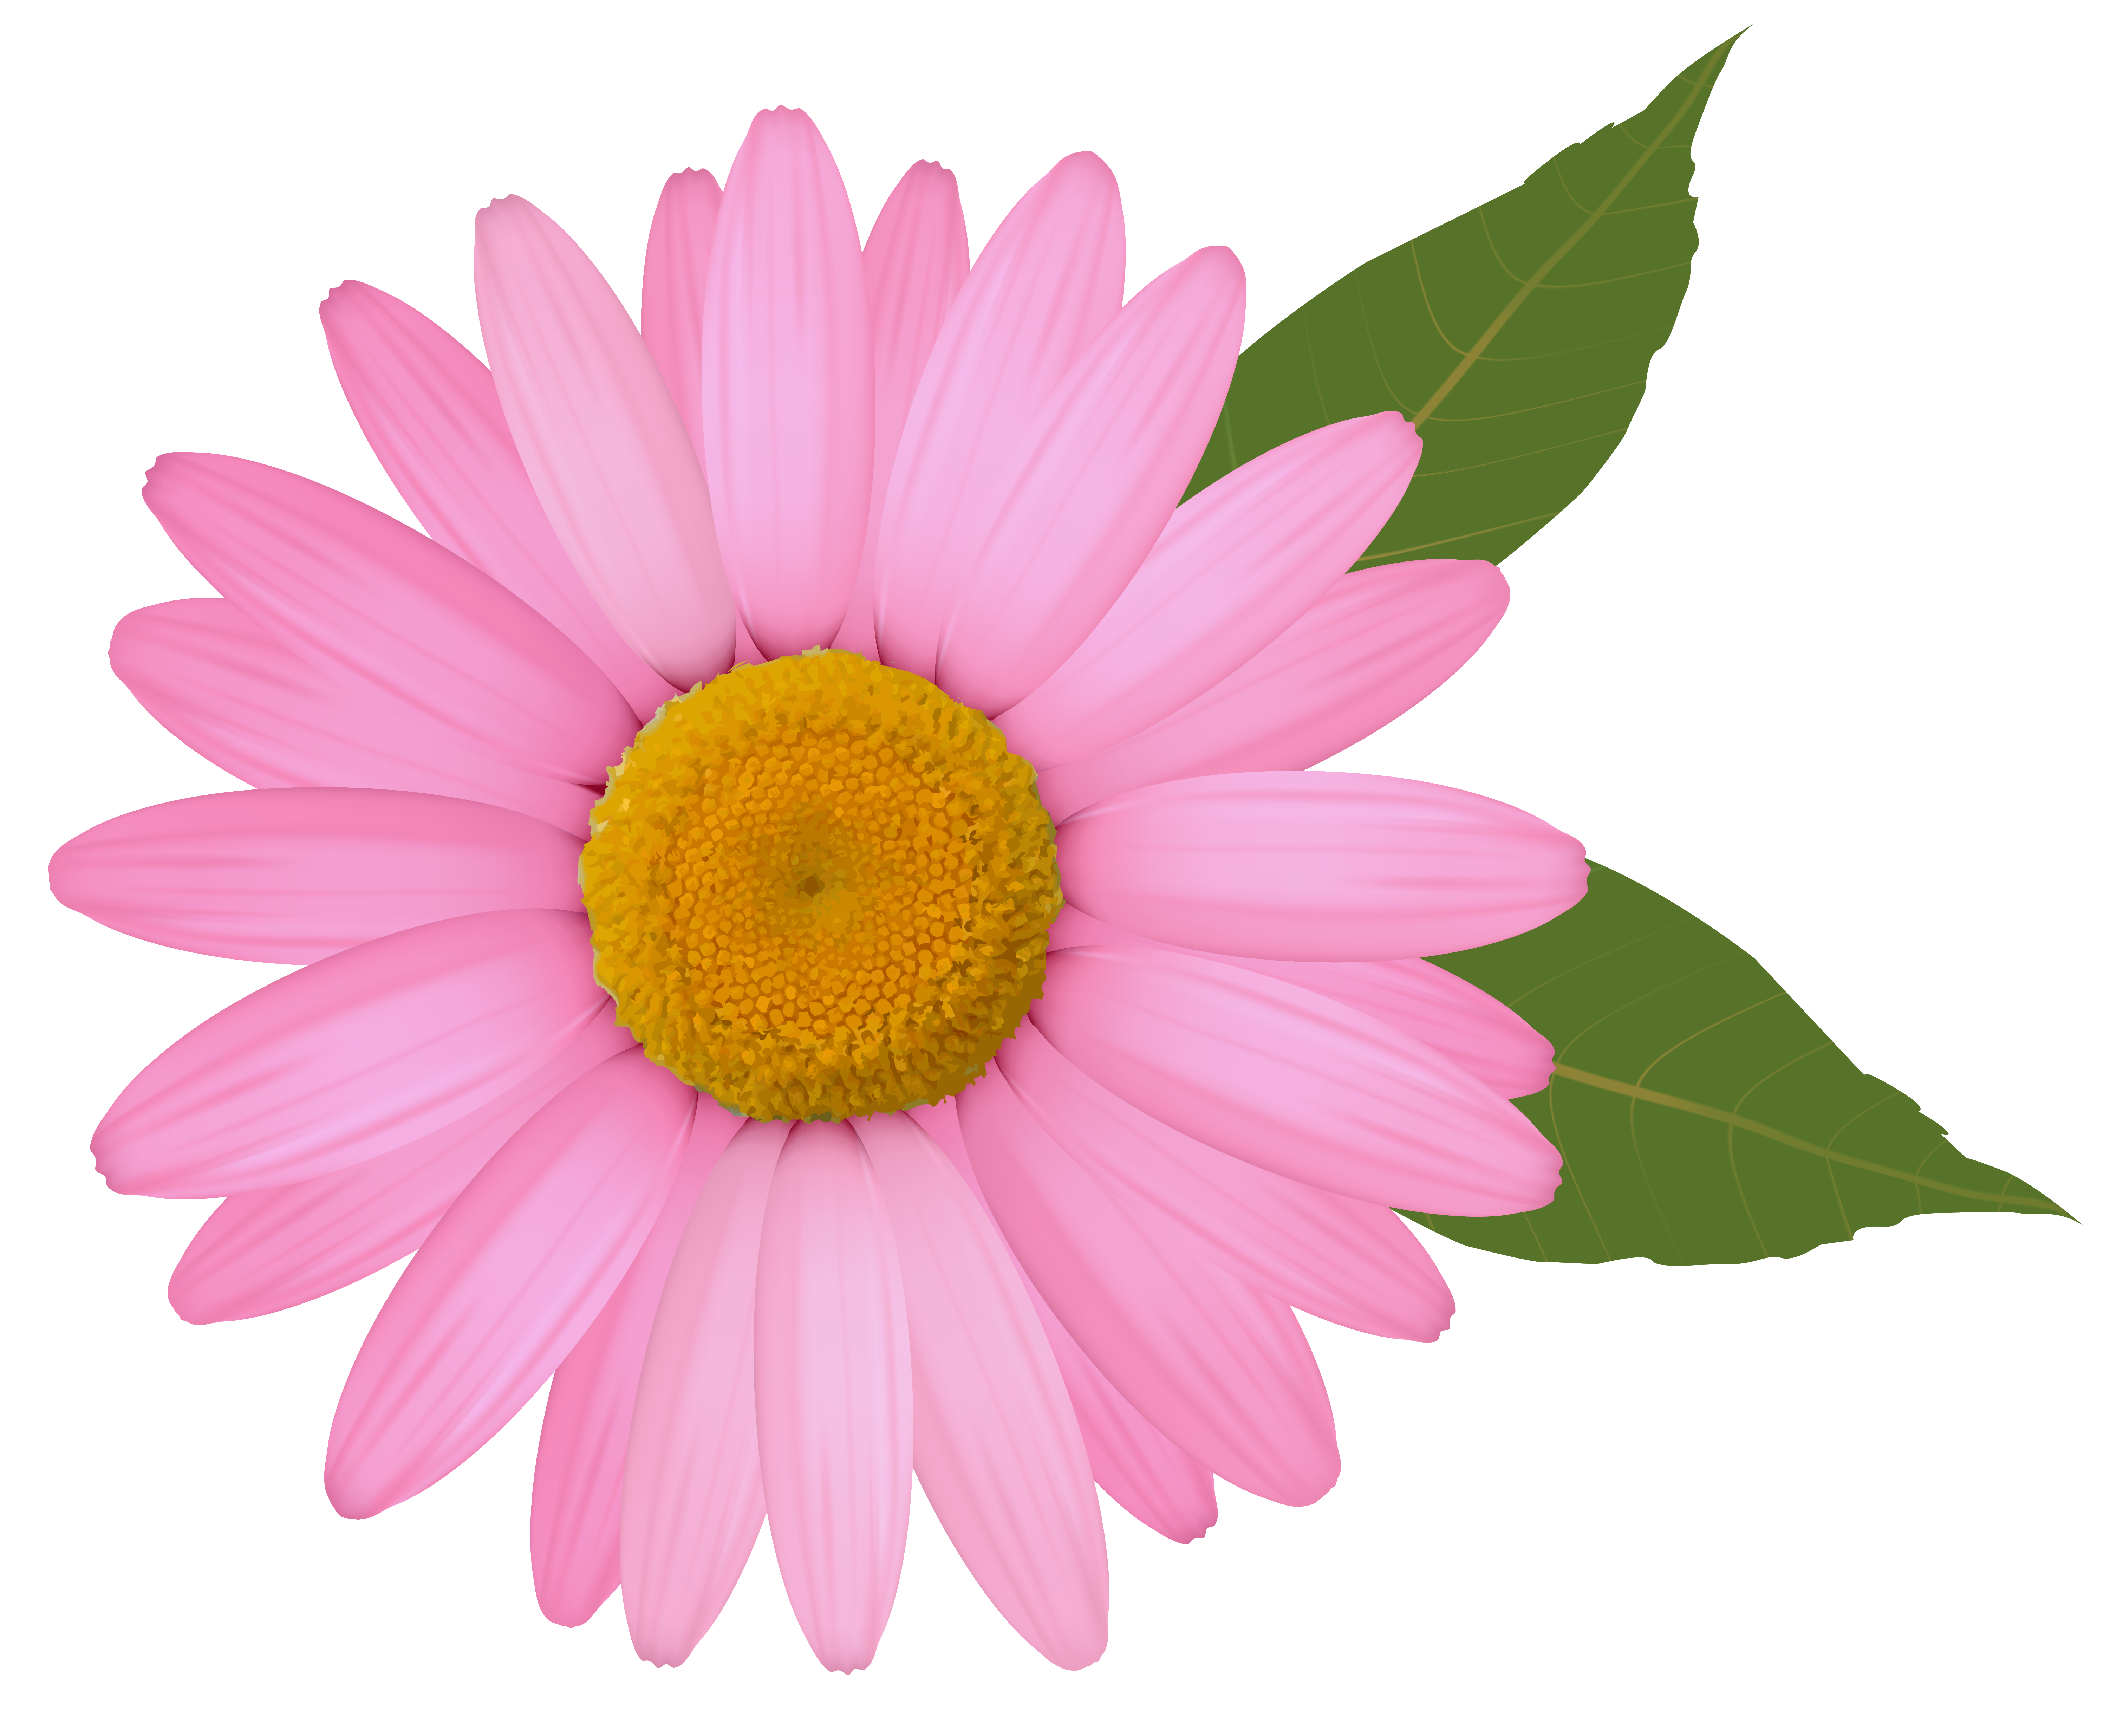 clip art transparent download Daisy clipart. Pink png image gallery.